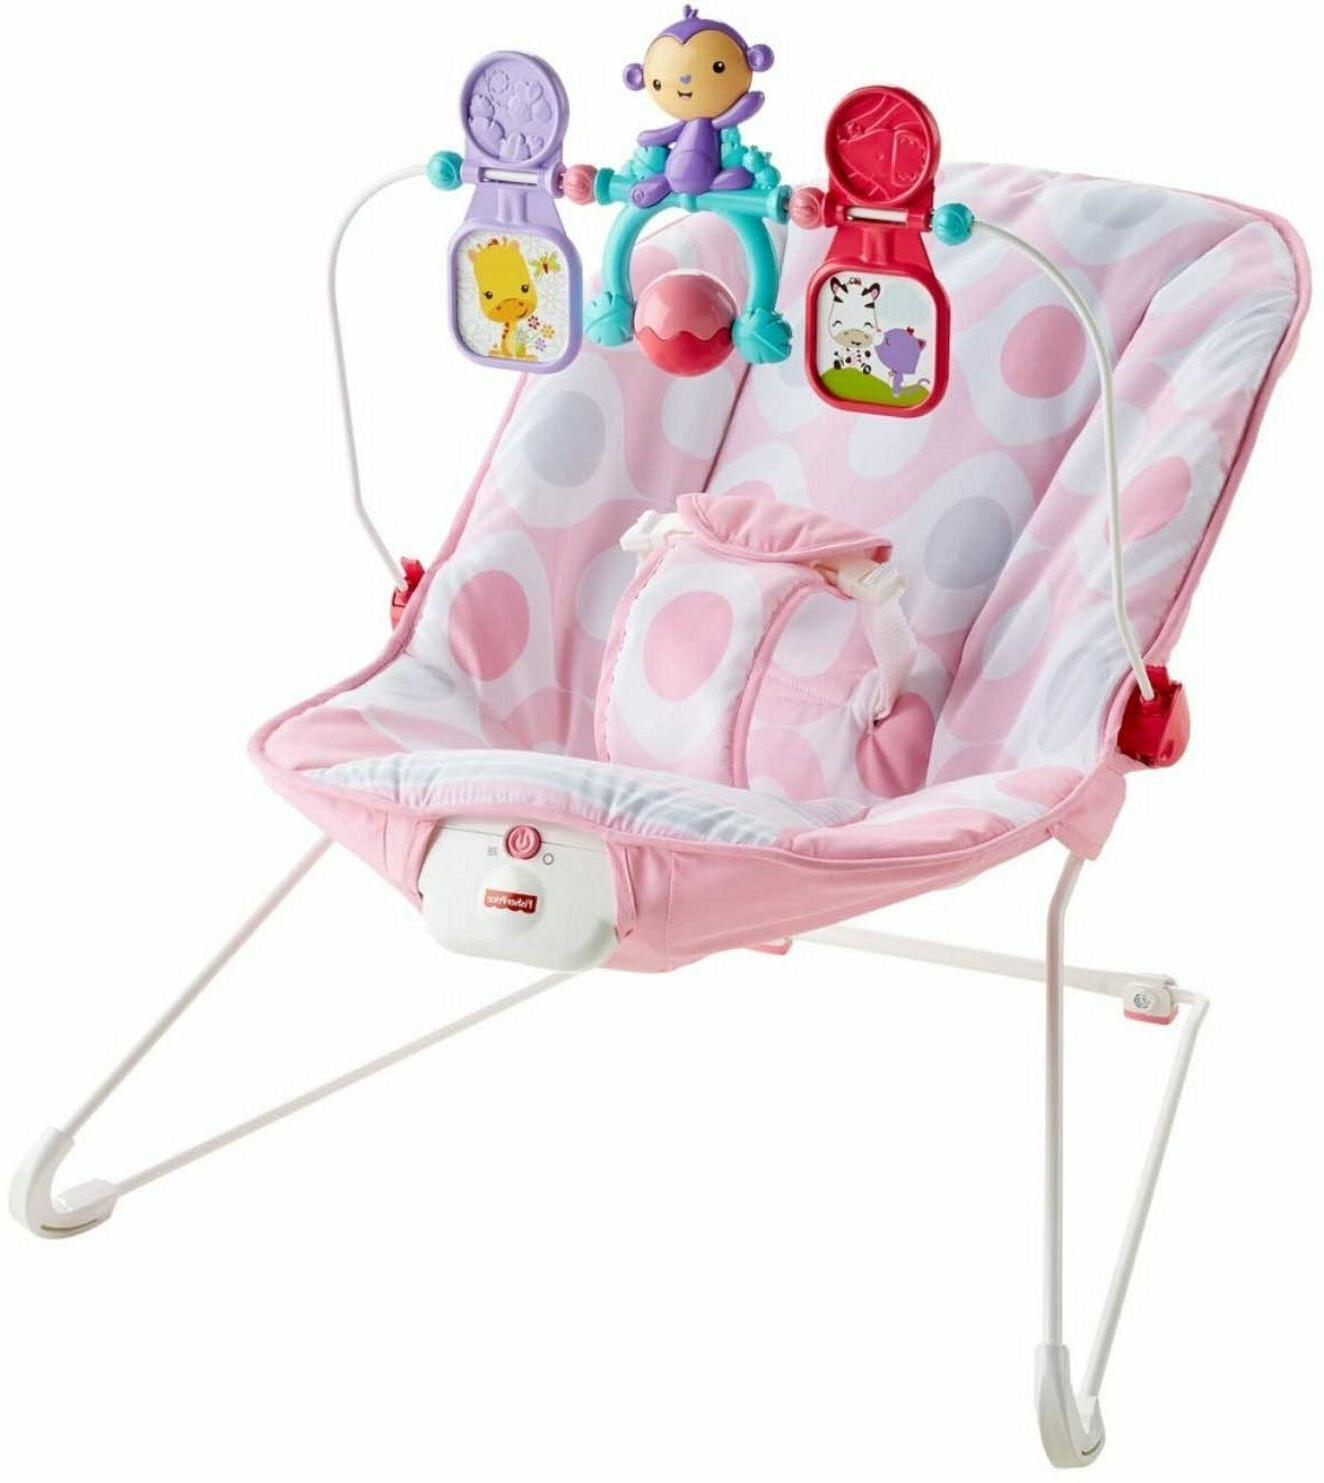 Baby Chair Infant Kids Vibration